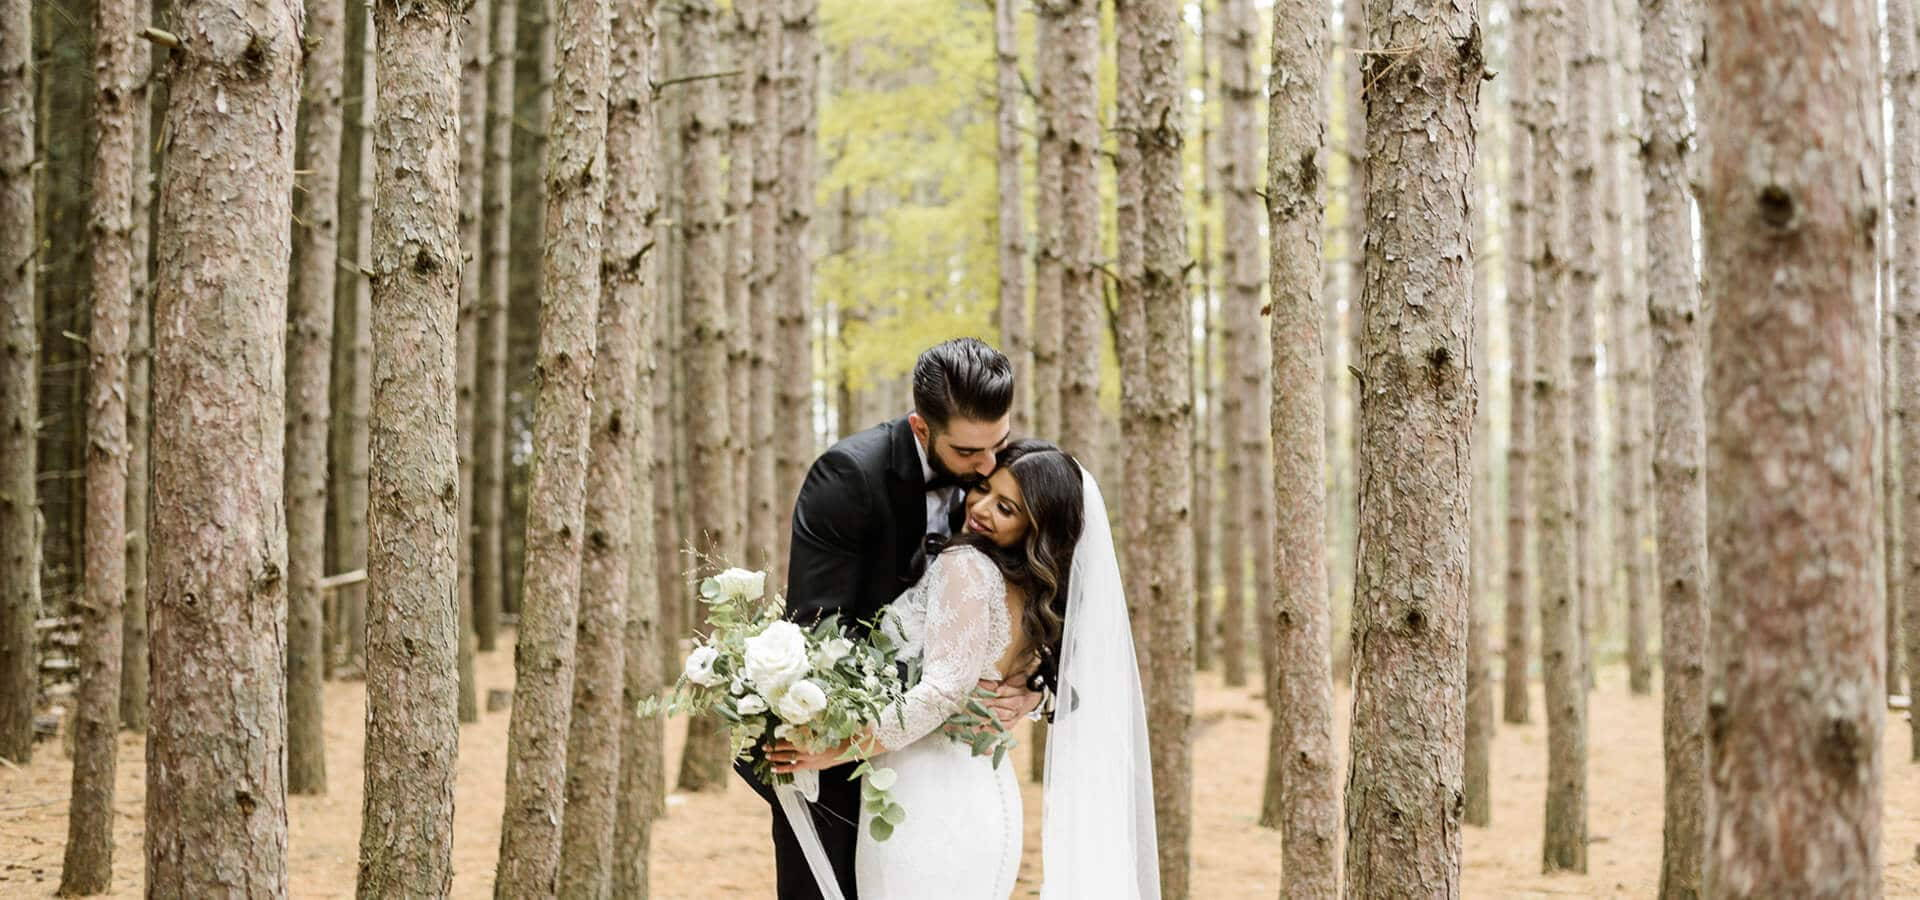 Hero image for Serena and Julian's Stunning Big Day at Chateau Le Parc